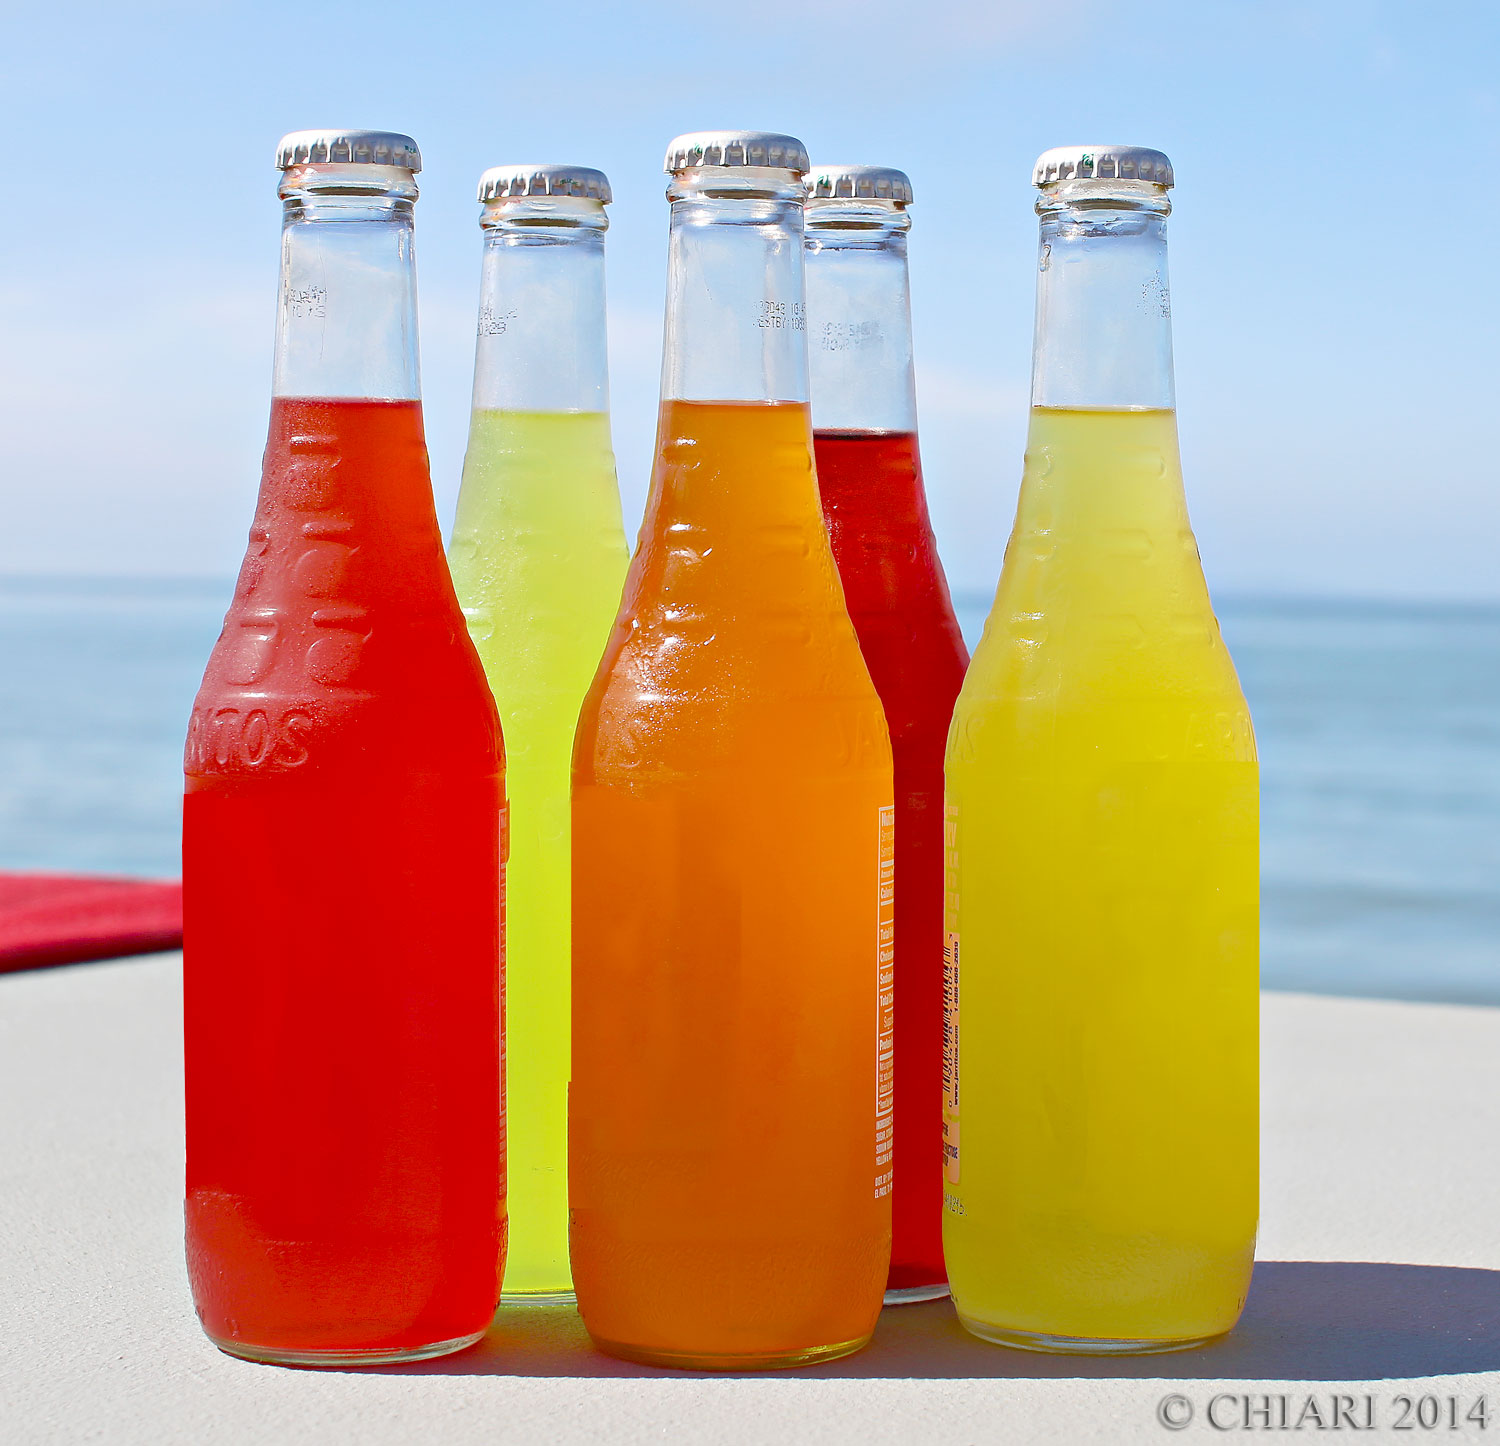 Jarritos natural flavors are the colors for CHIARIstyle 14